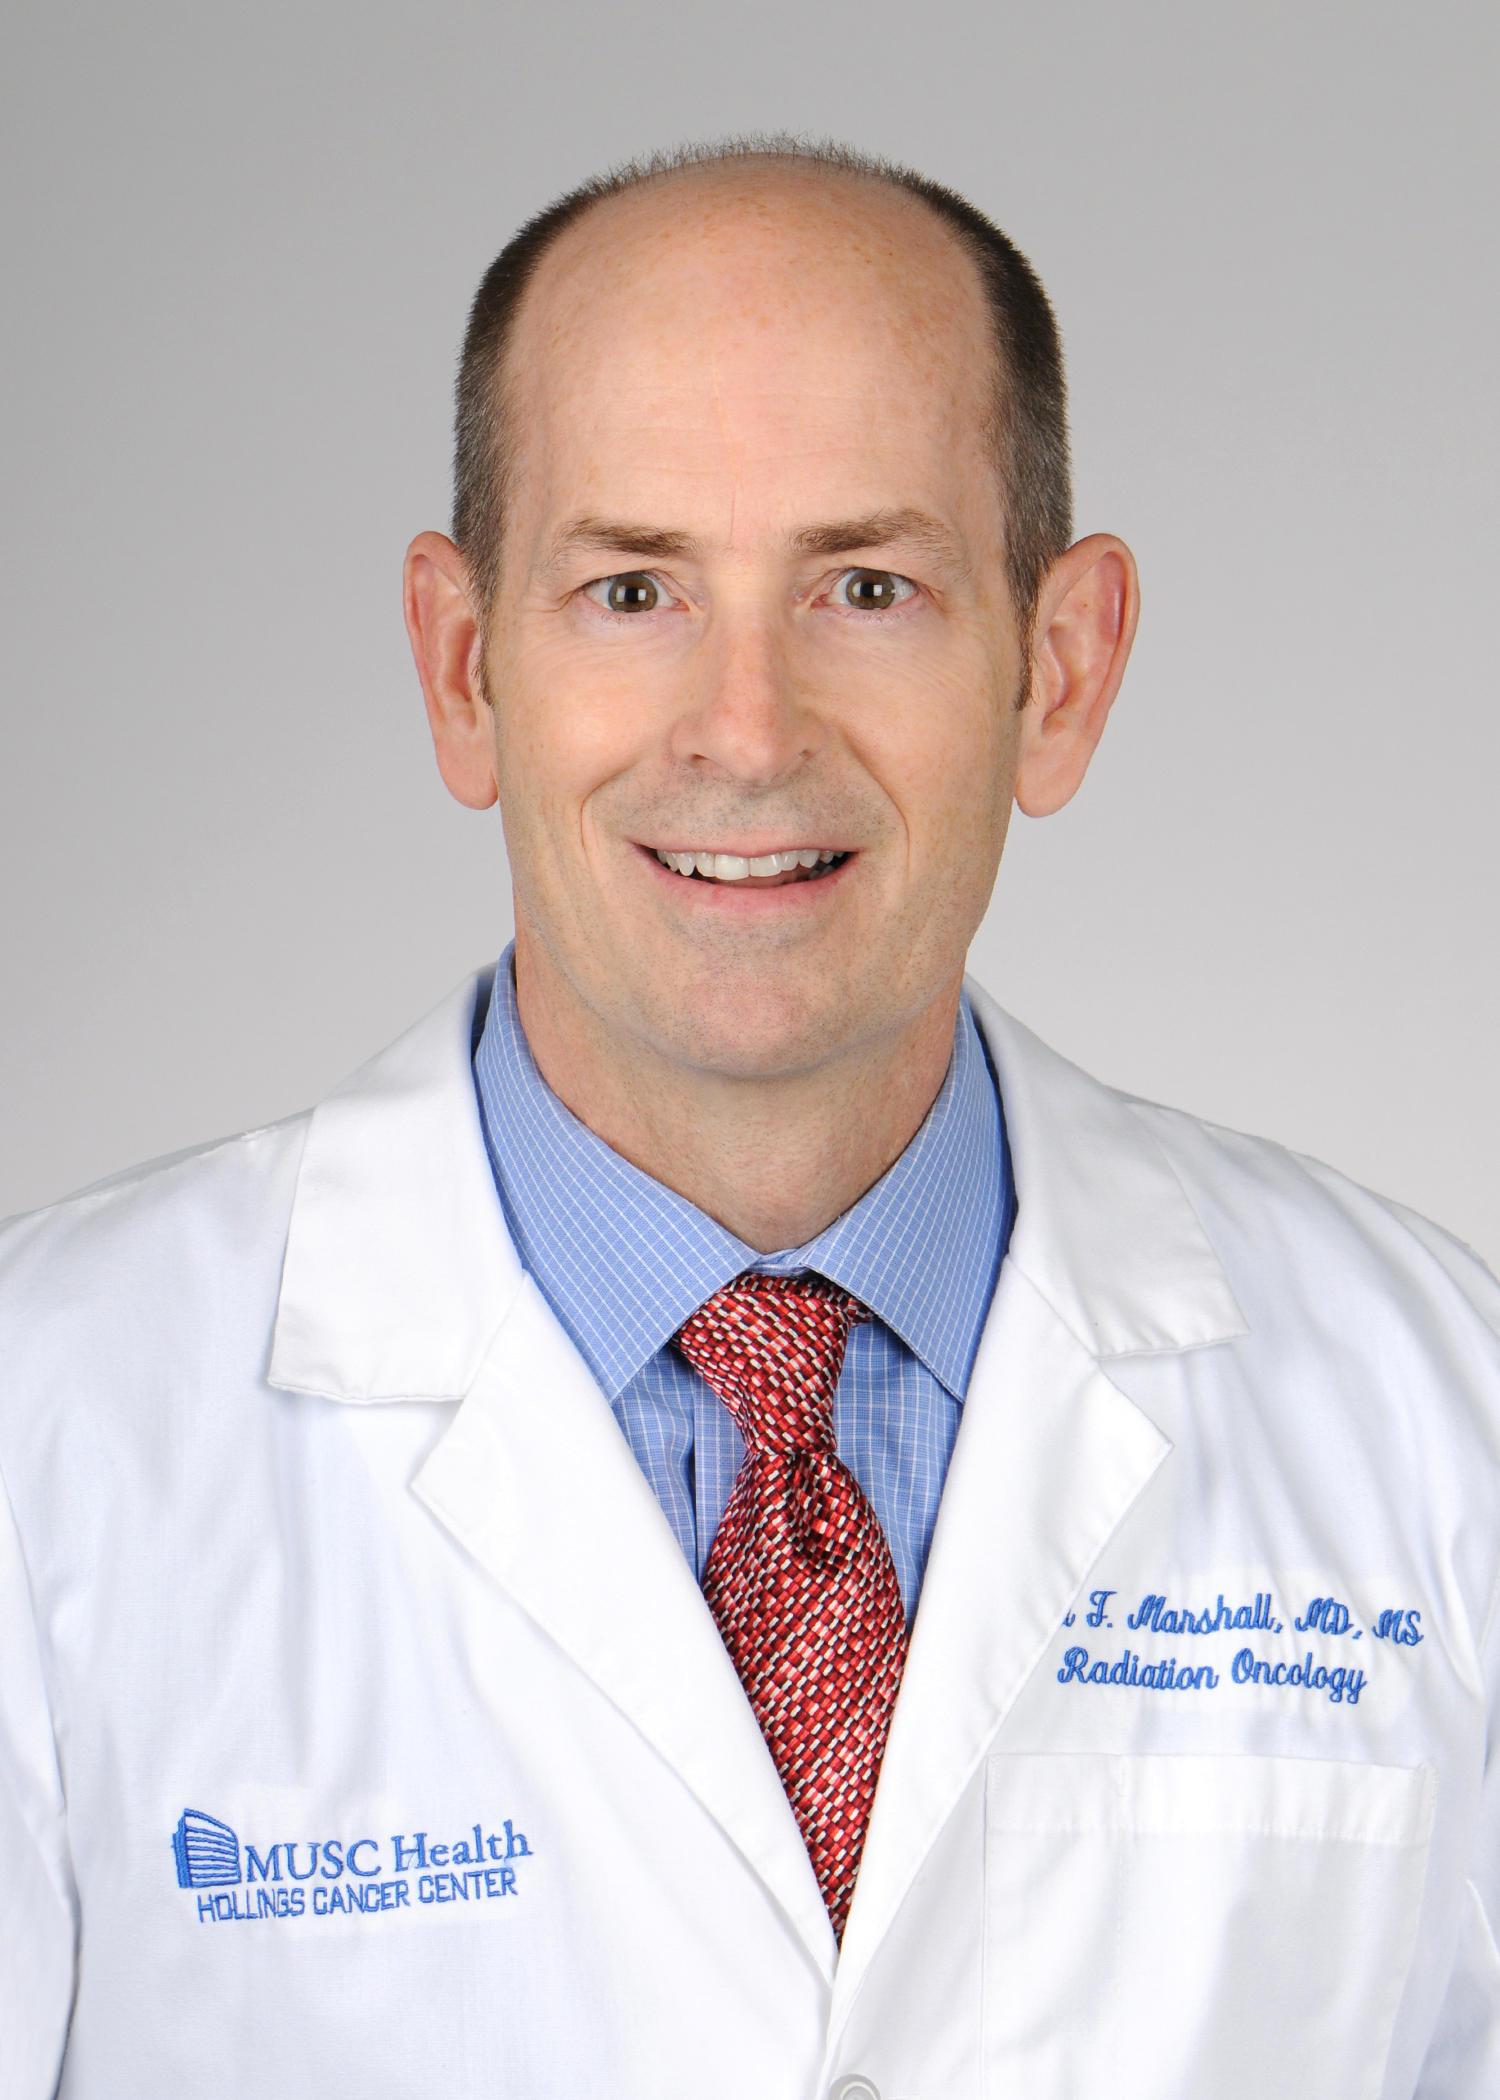 David Taplin Marshall, MD